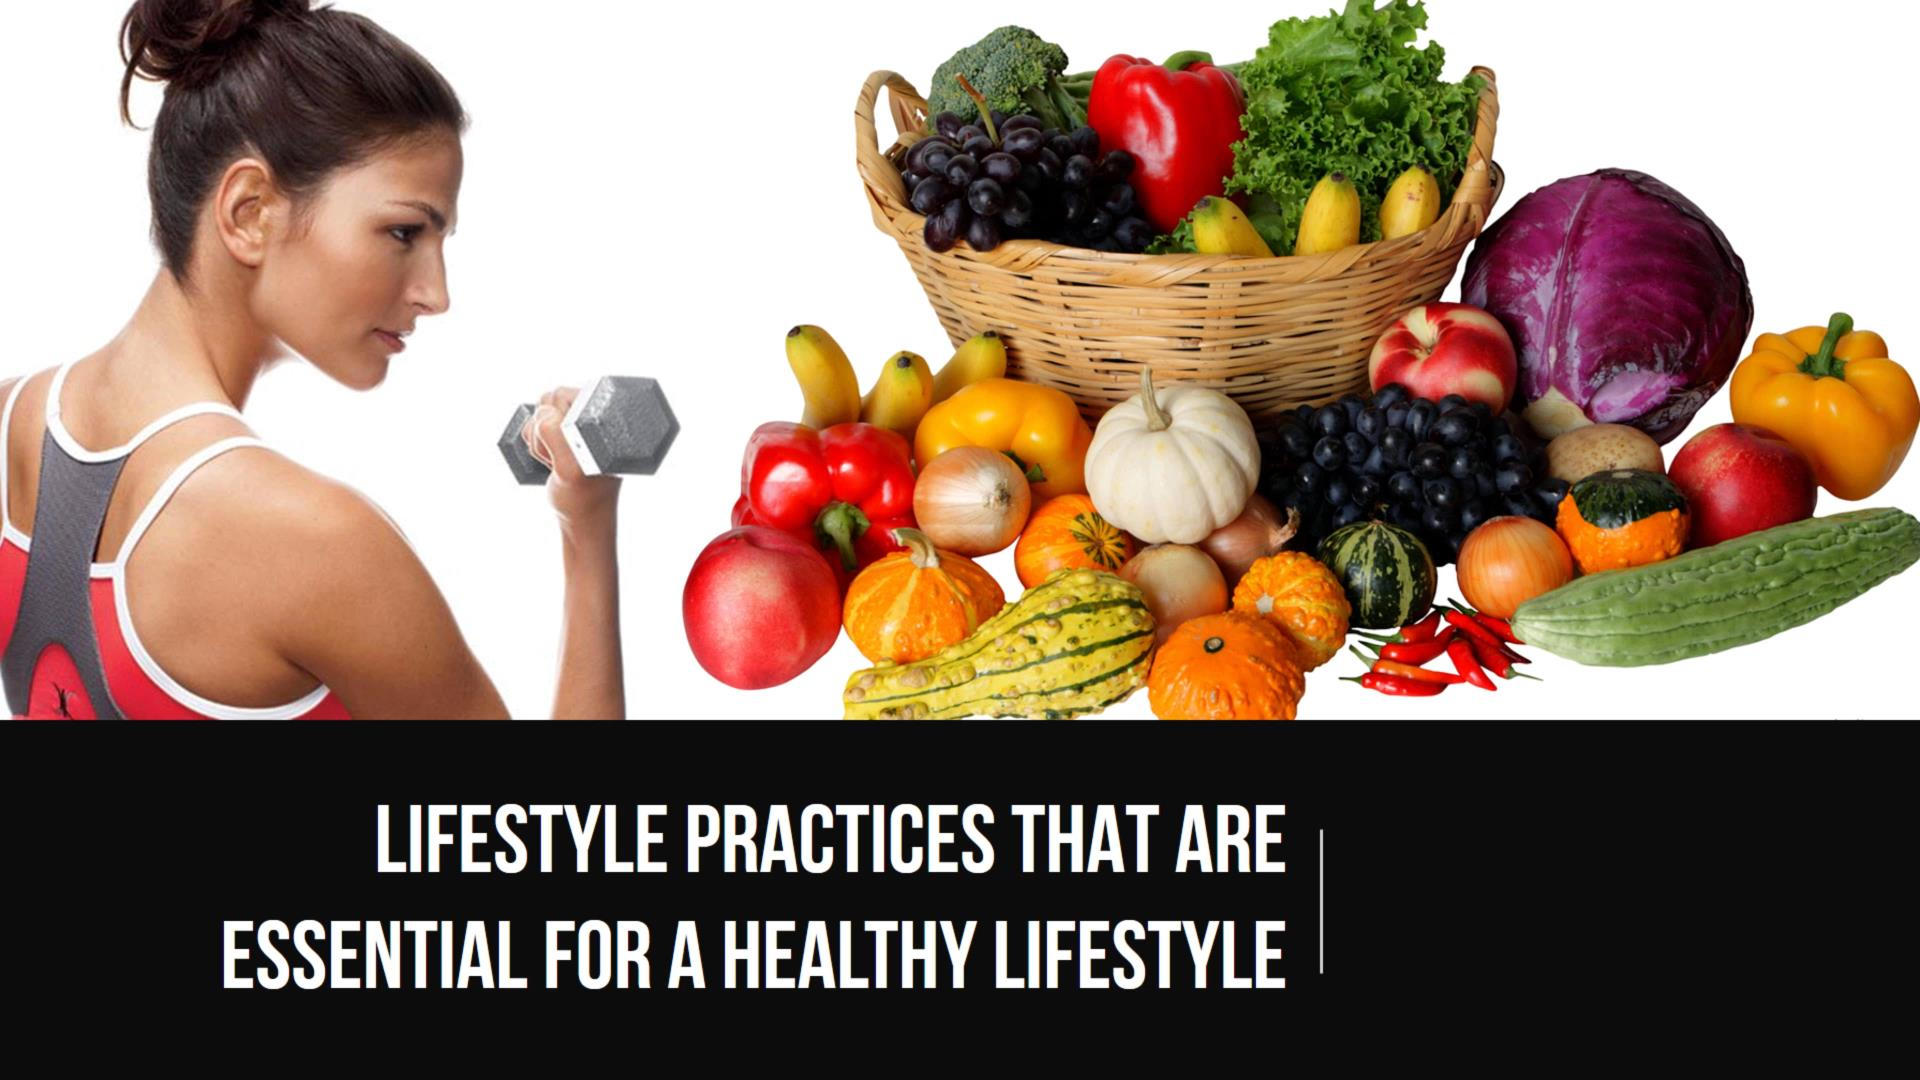 Lifestyle Practices That Are Essential For A Healthy Lifestyle